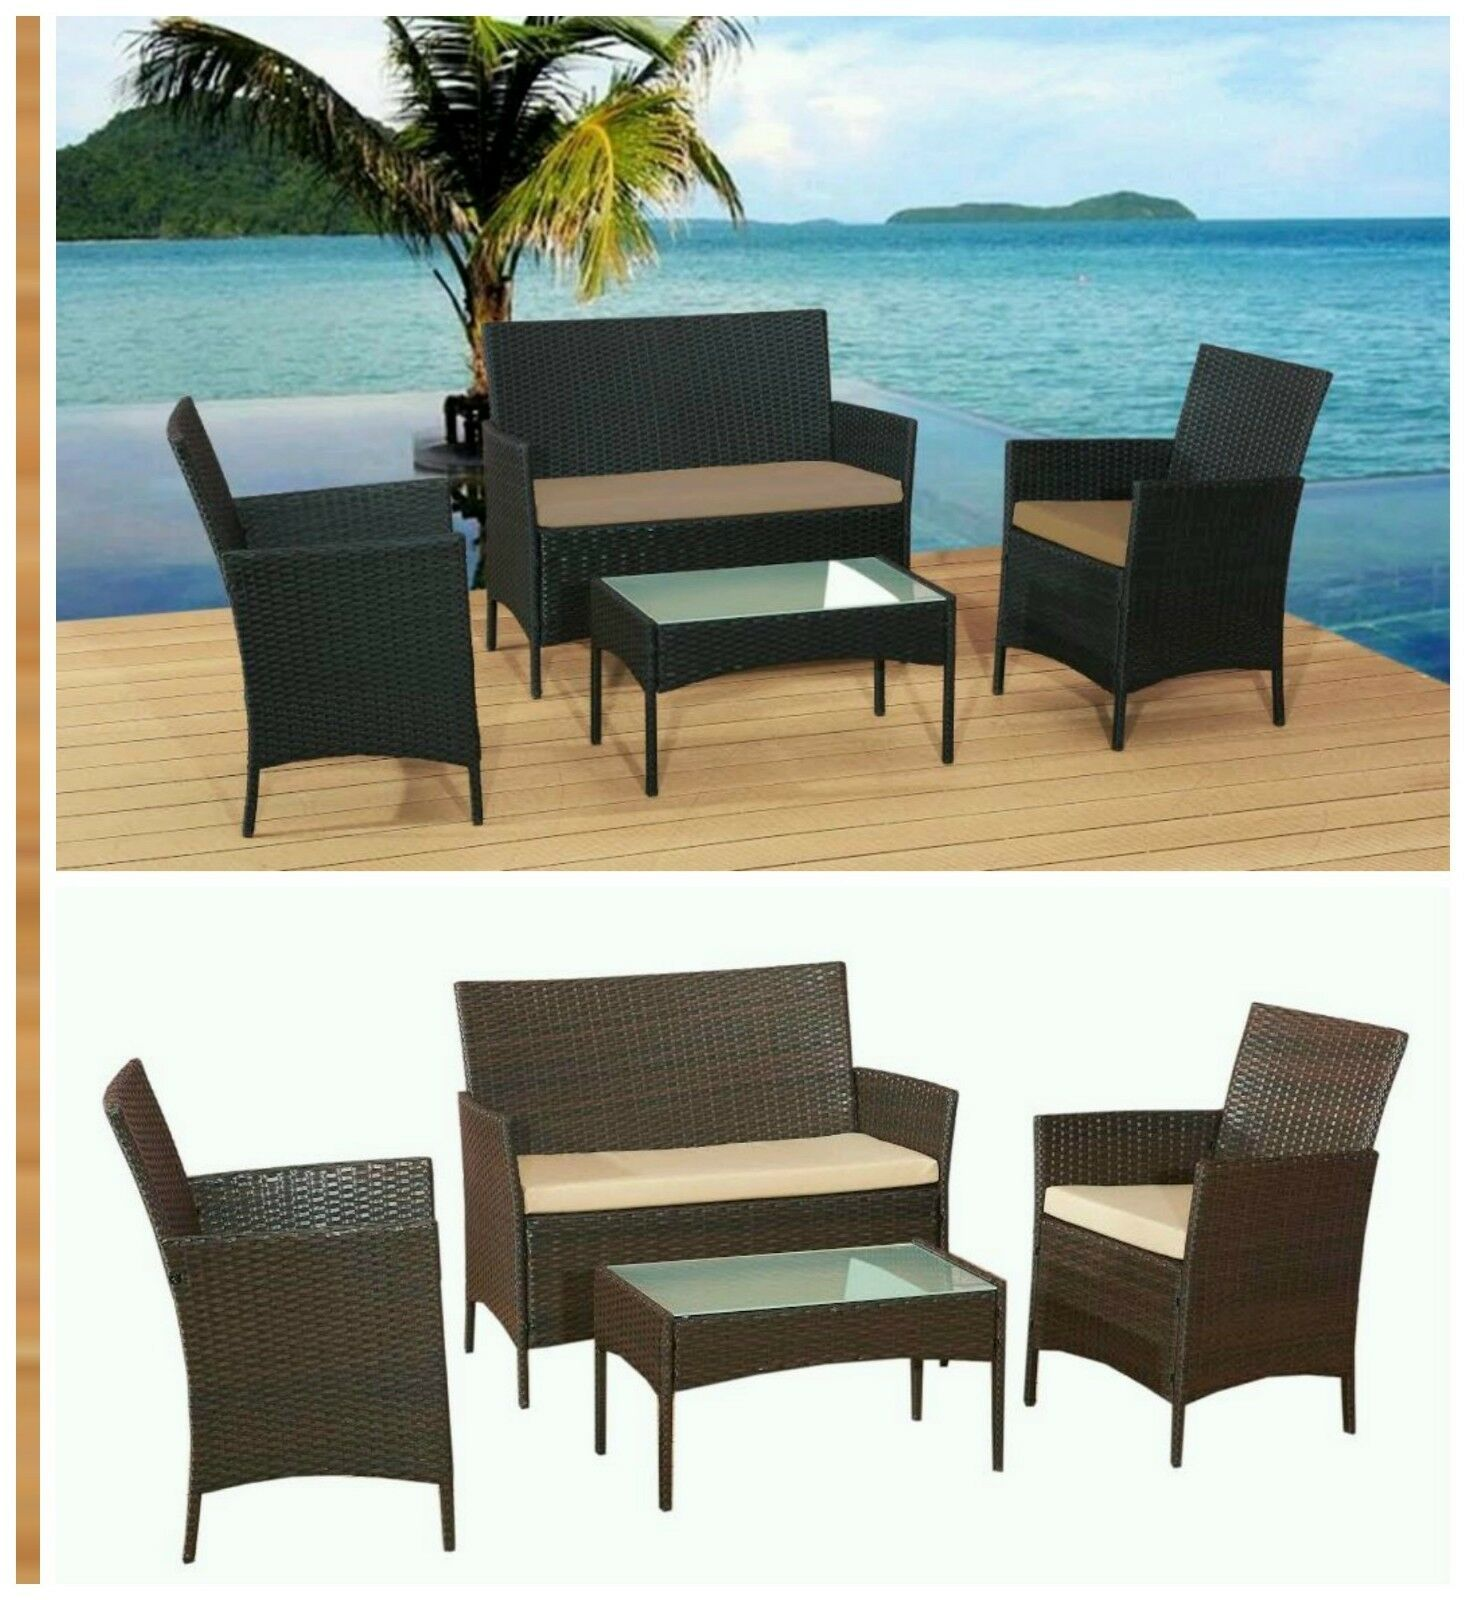 Rattan Sofa Instructions Rattan Garden Furniture Sofa Table Chairs Set Patio